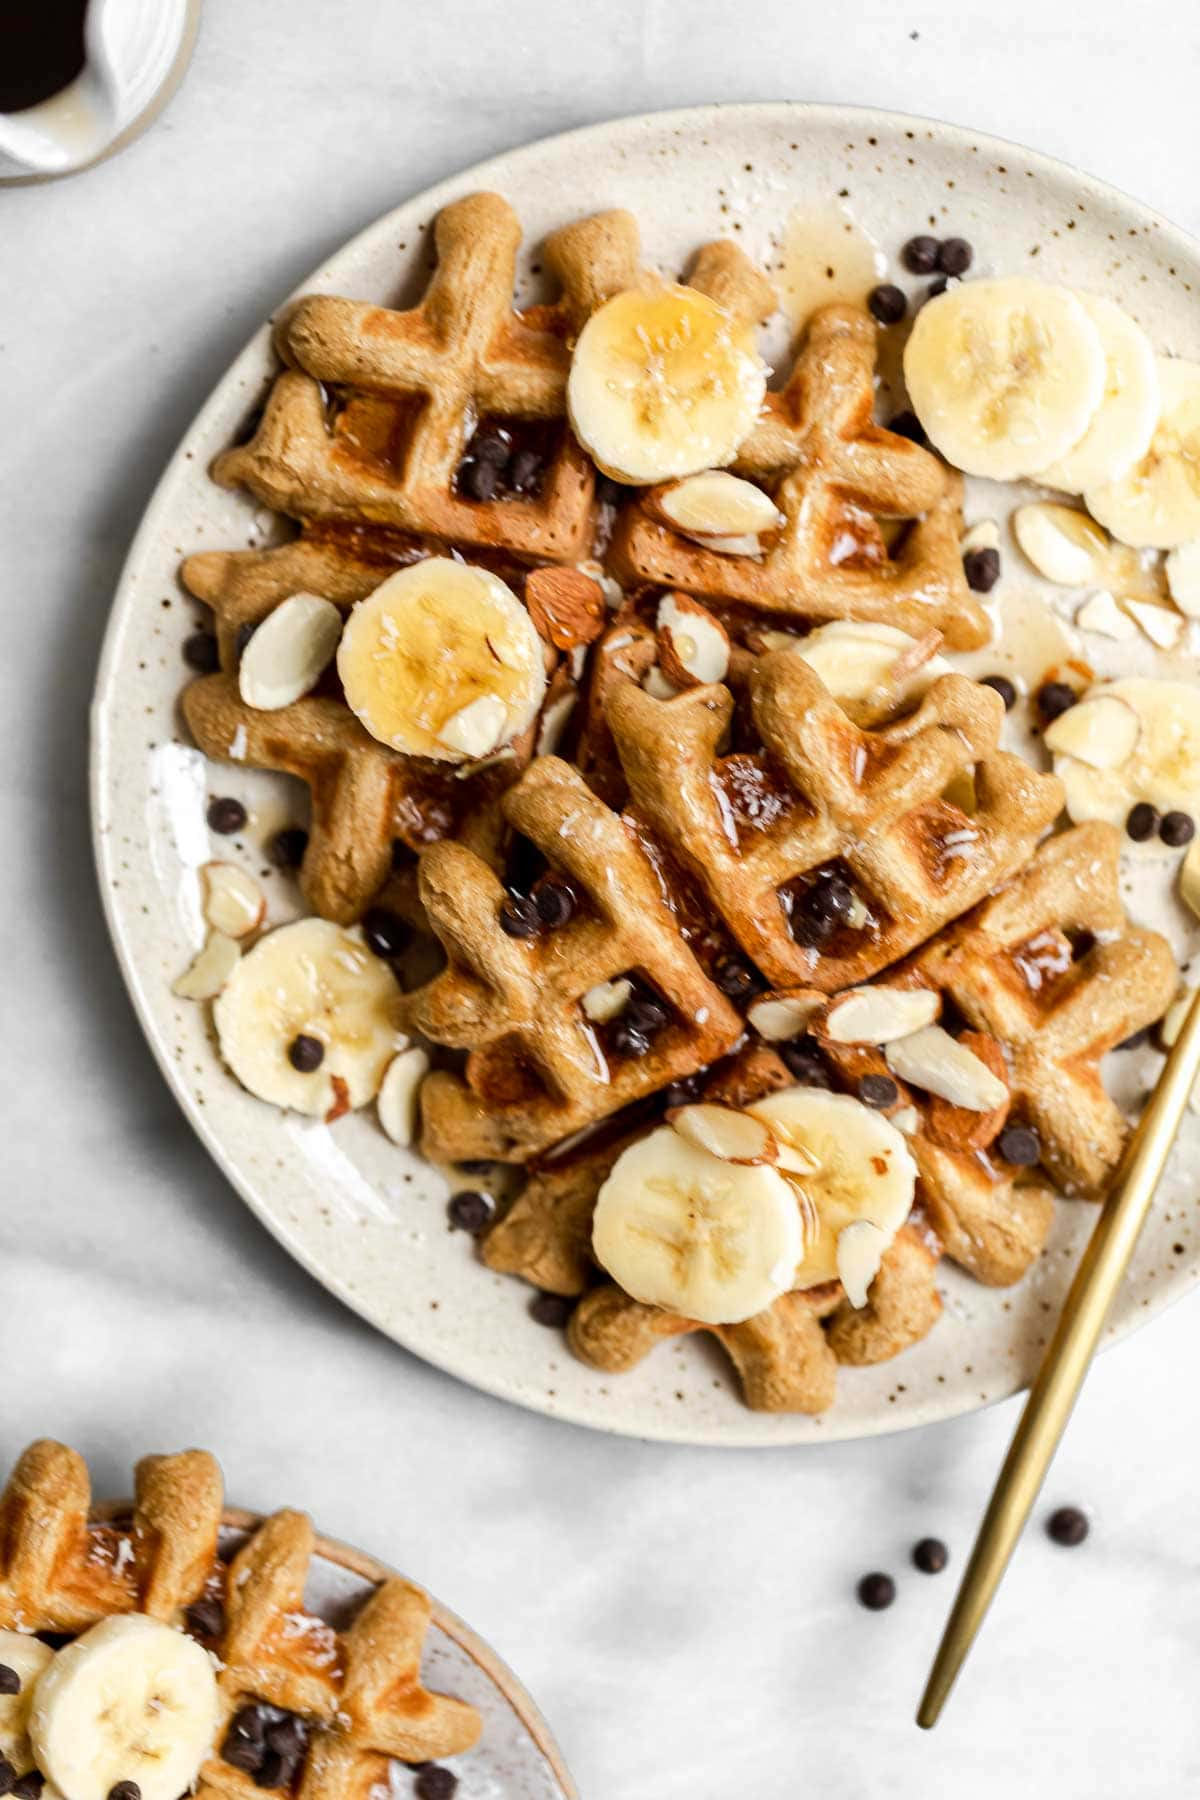 Speckled plate with peanut butter waffles and banana slices.